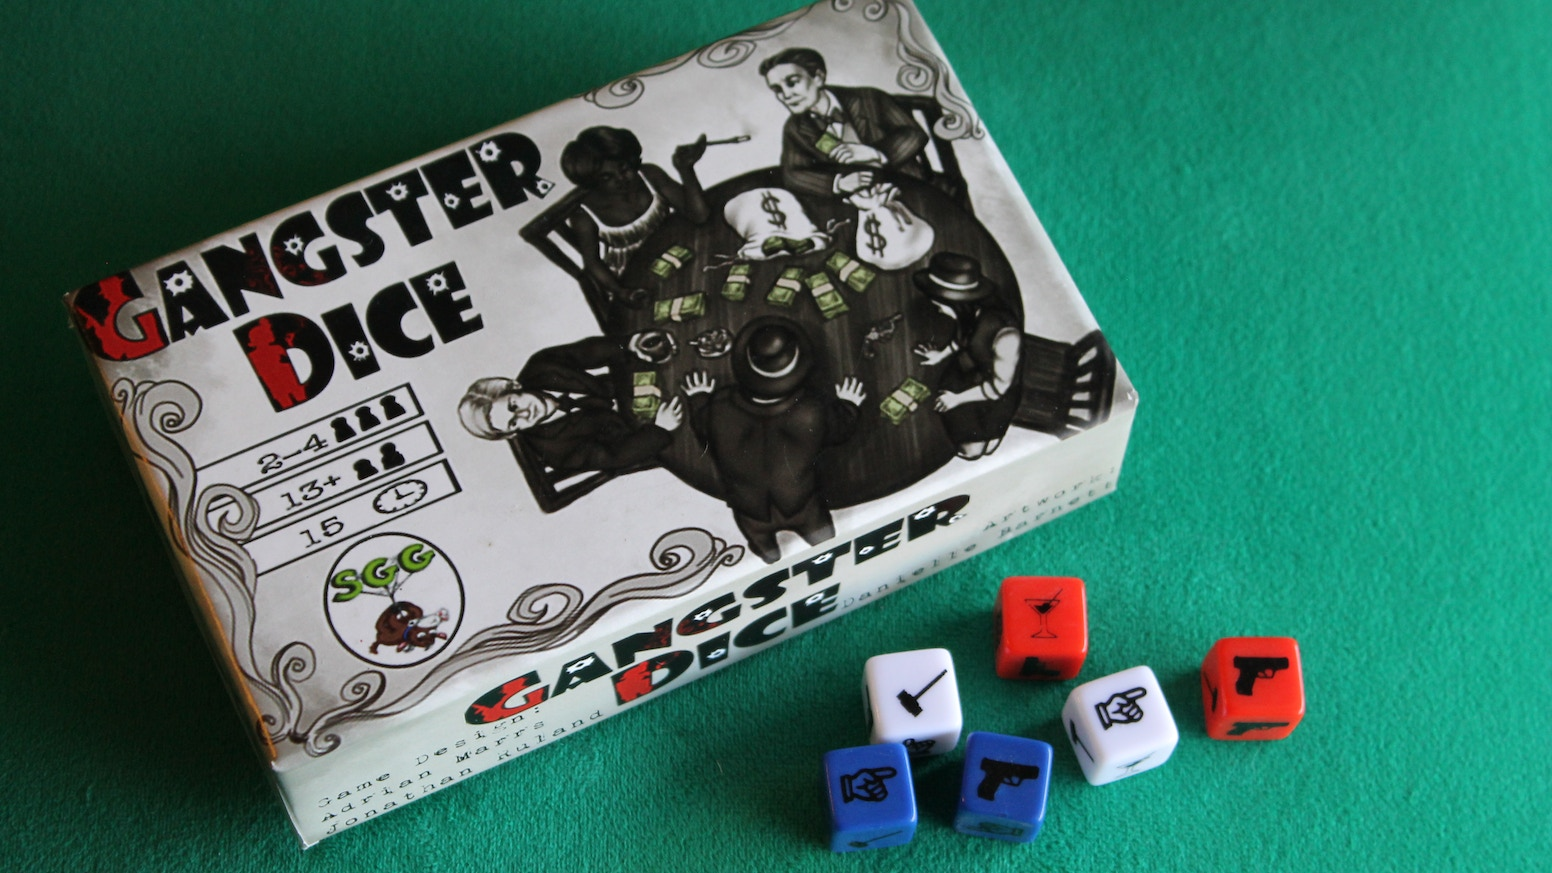 A Prohibition Era game of dodging the cops, ditching the evidence, and dicey danger.